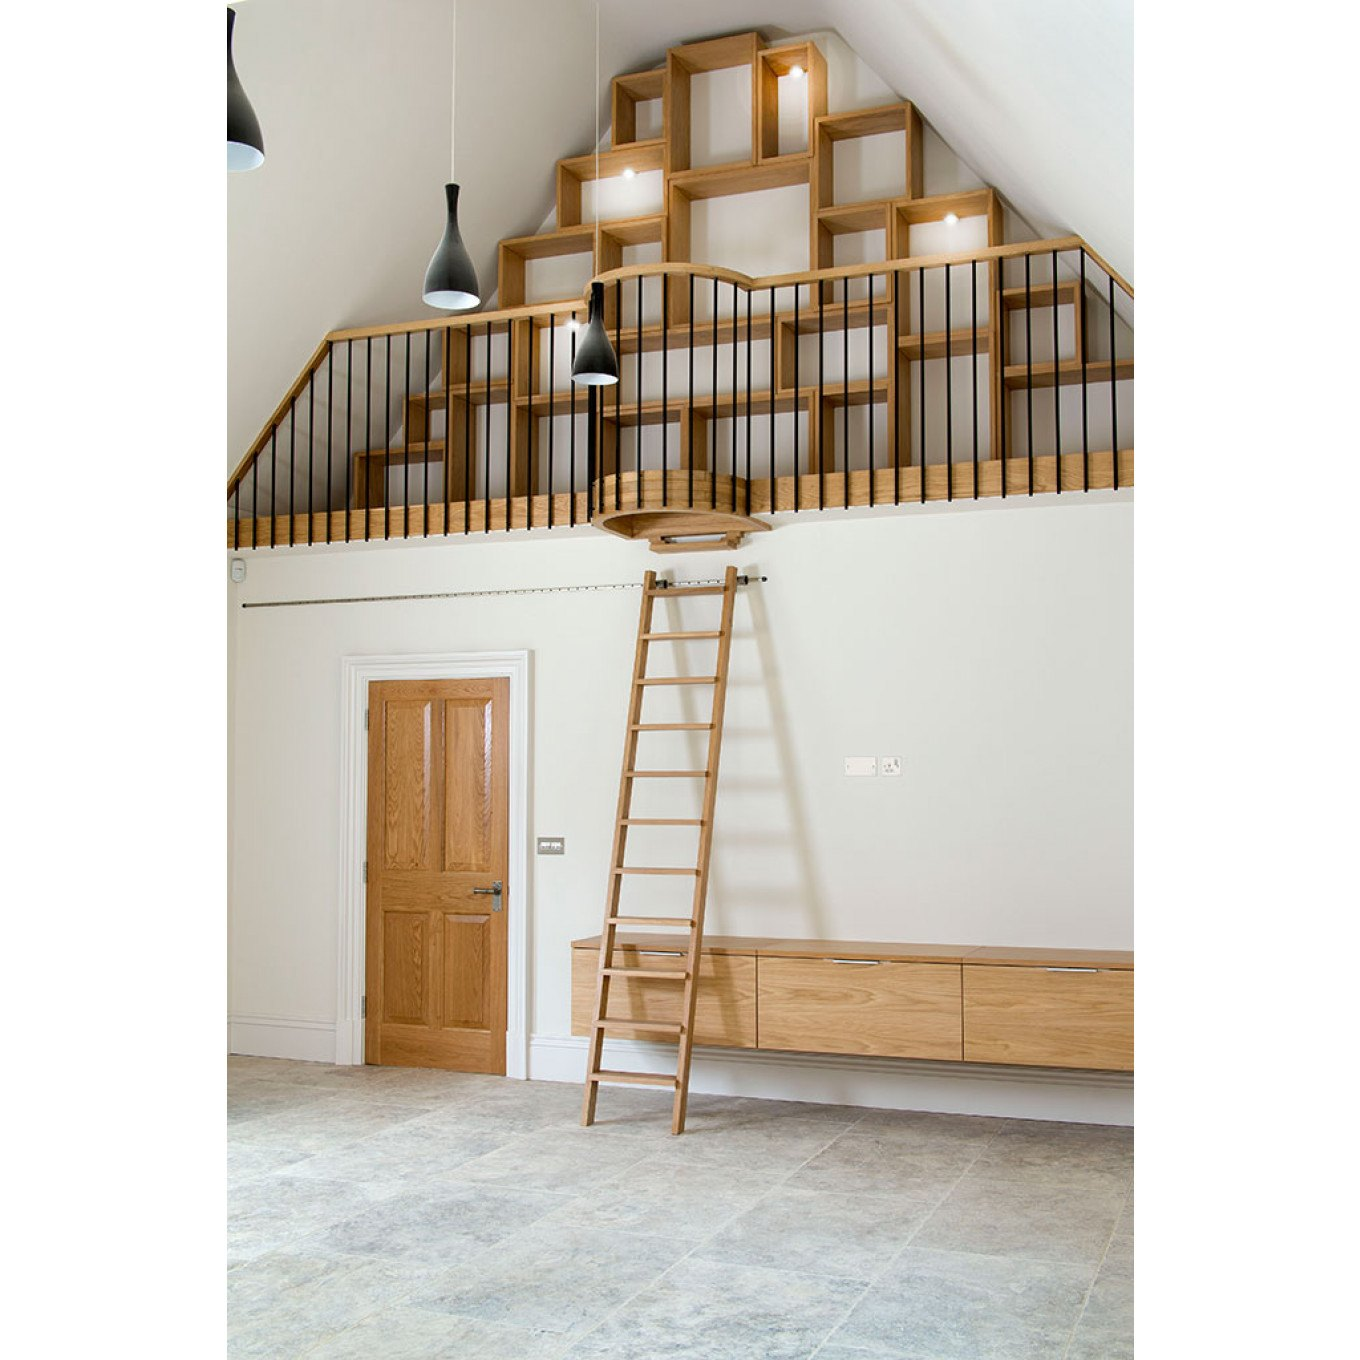 Indulging Vaulted Area Kitchen From Rolling Ladder Invaulted Area Sale Rolling Library Ladder Hardware Kit Rolling Ladder Kitchen From Peter Rolling Library Ladders Rolling Ladders Rolling Library Lad houzz 01 Rolling Library Ladder